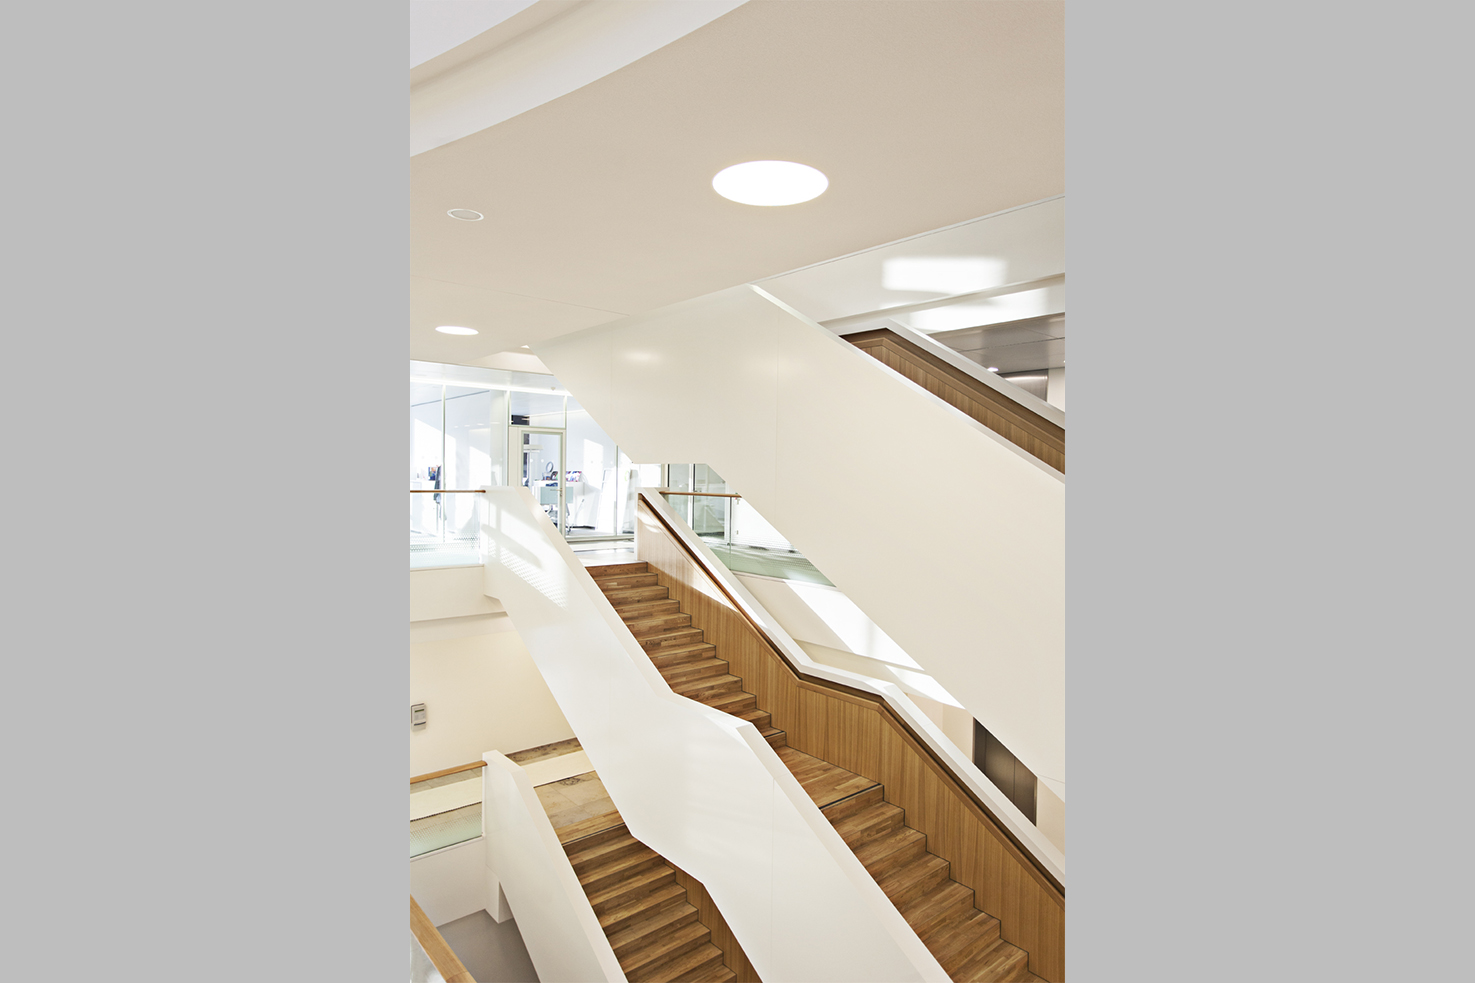 All floors are connected by the centrally located, open staircase that fits seamlessly into the overall structure of the building.